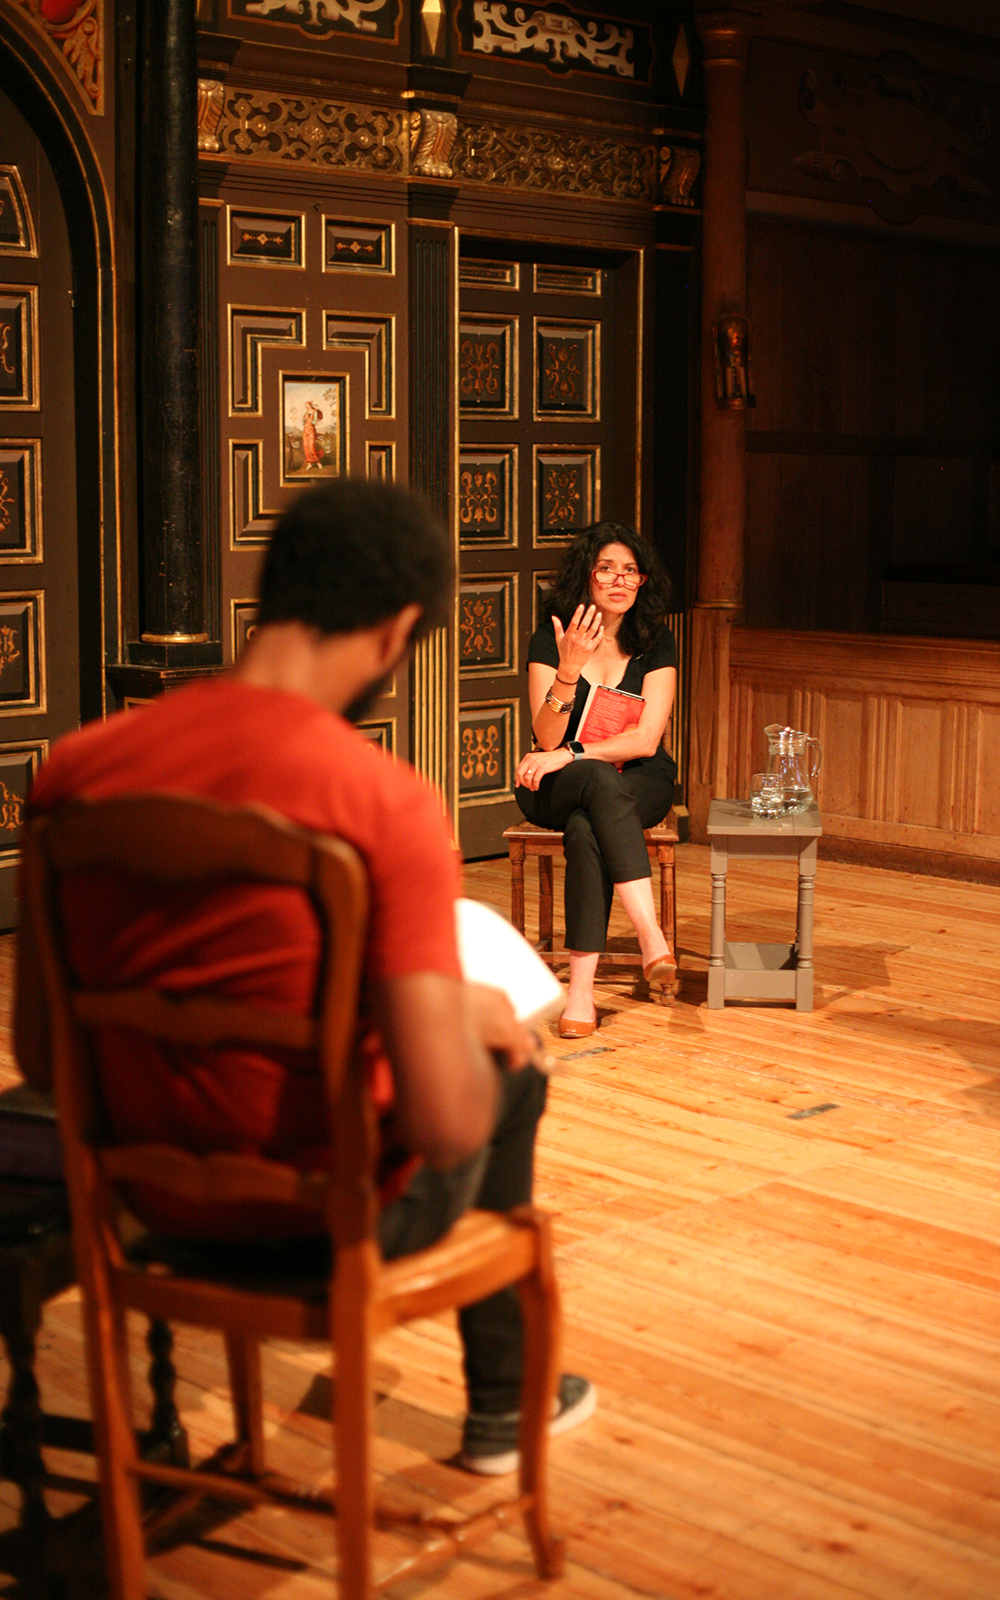 A woman talks to a group onstage as they sit on chairs